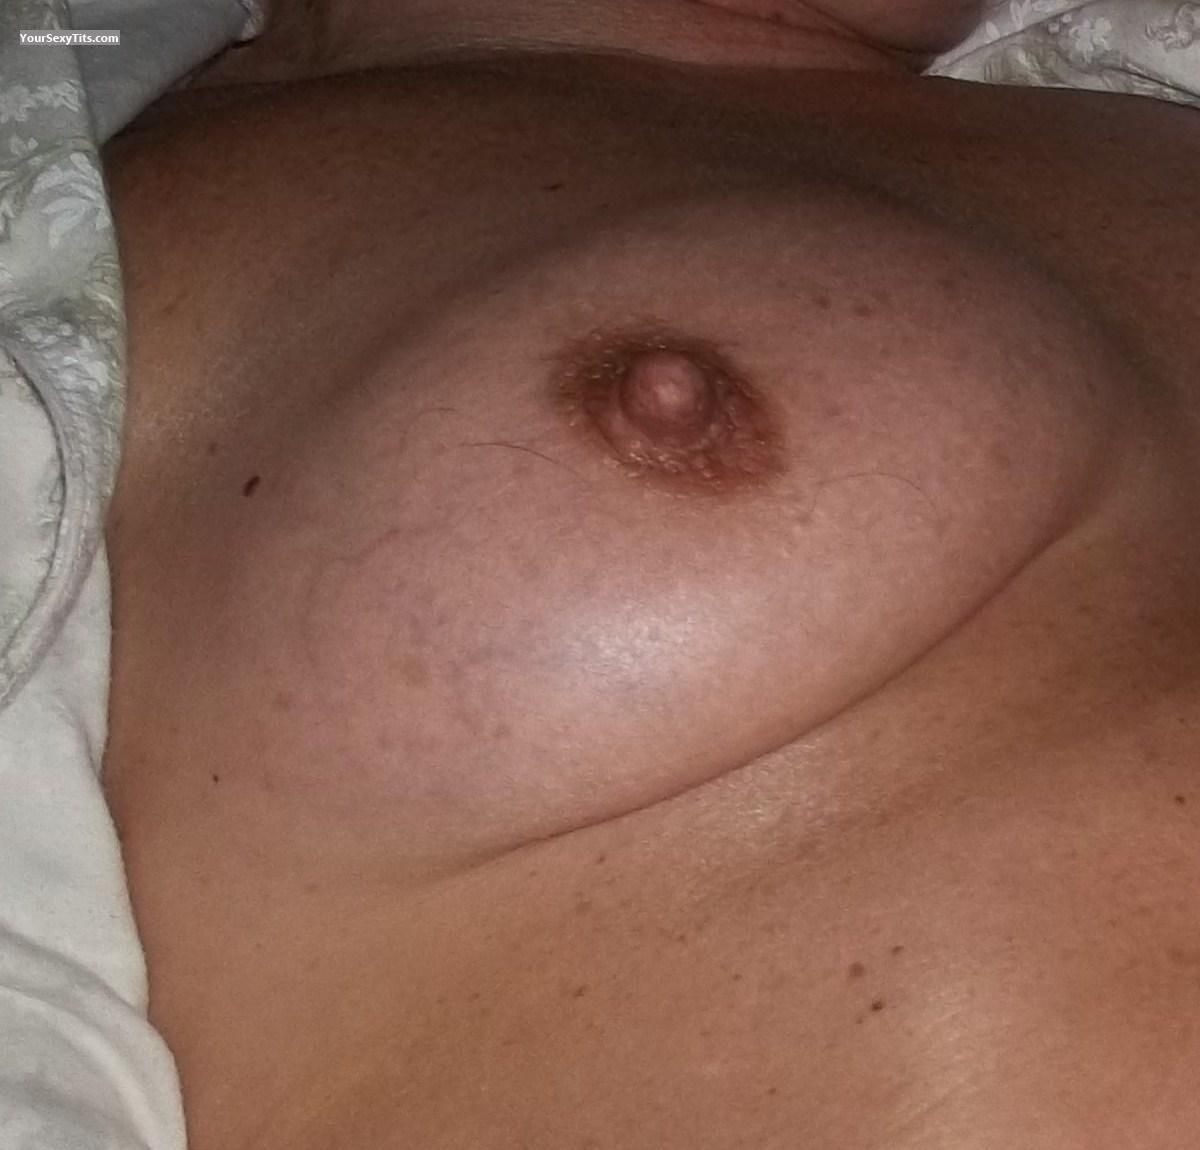 Tit Flash: Small Tits - Lisa from Canada